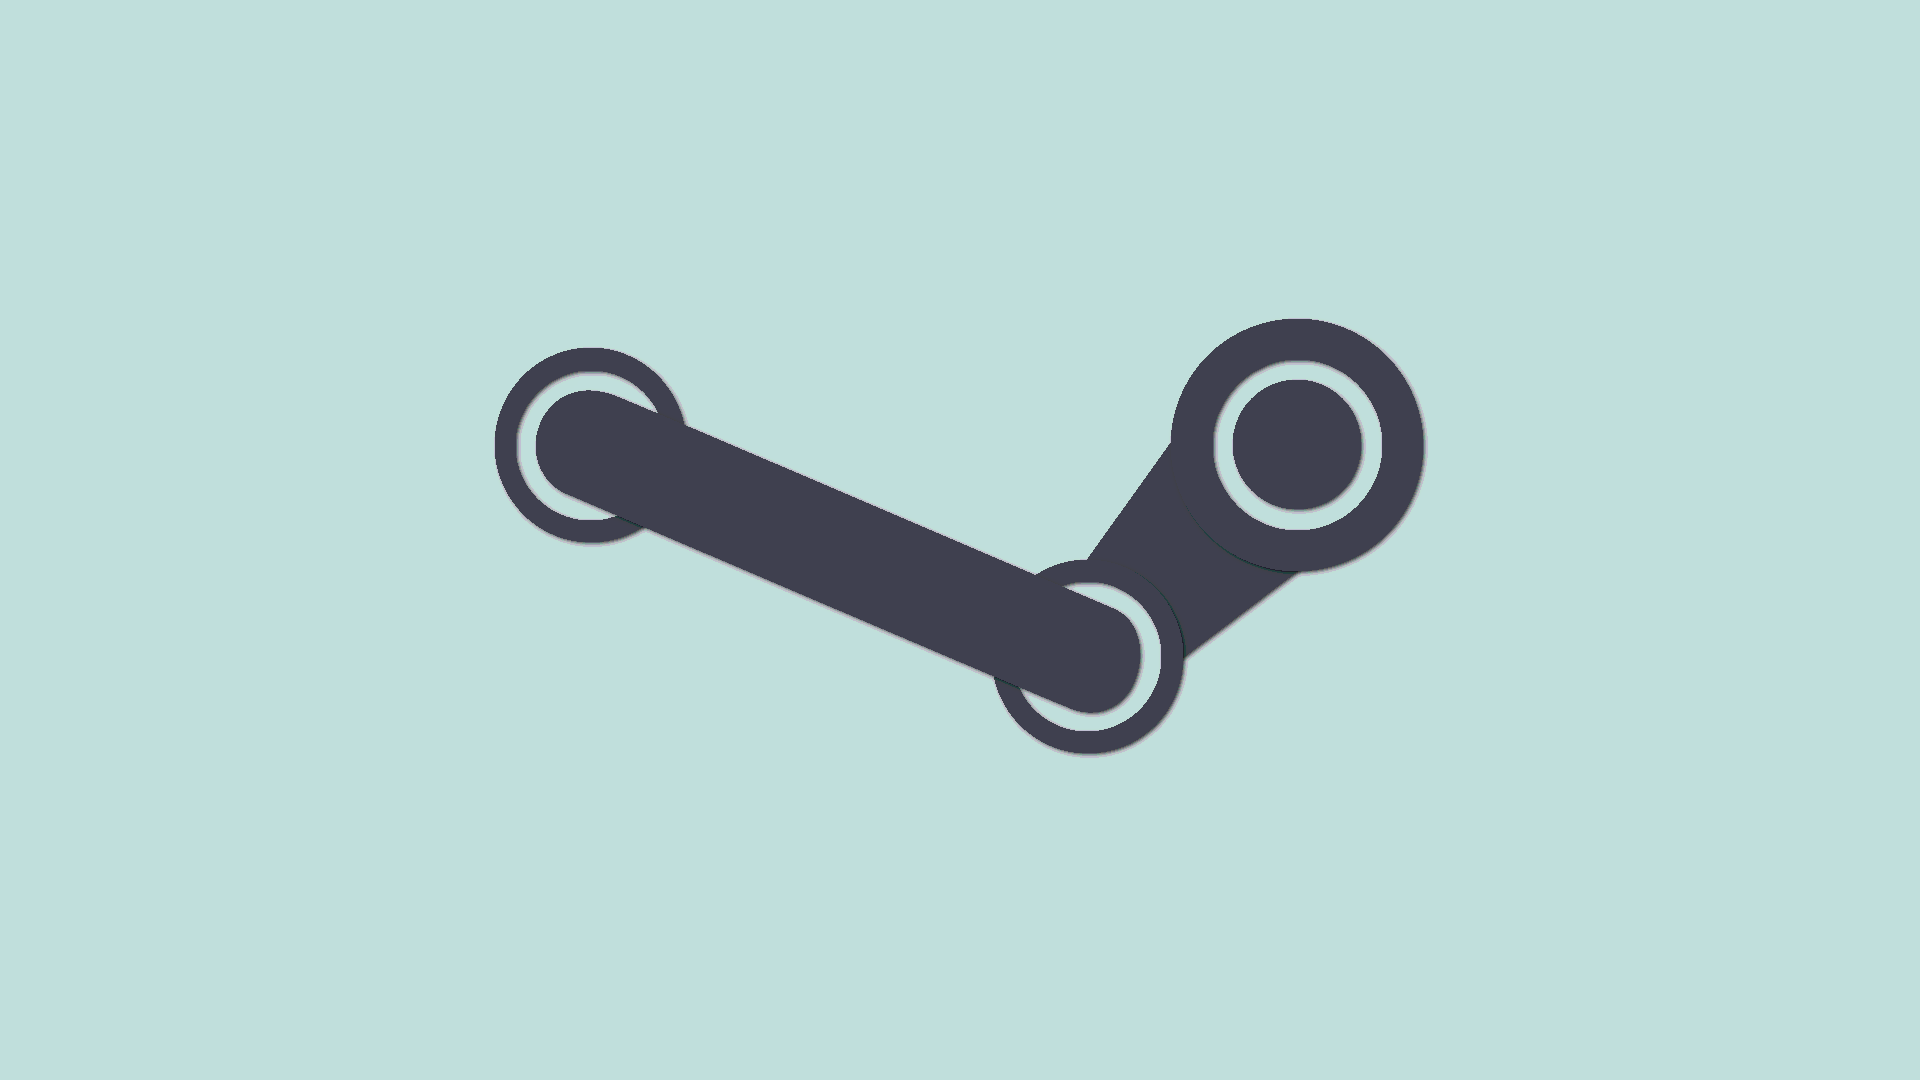 steam-flat-minimalist-wallpaper-by-ketcham1009-deviatart